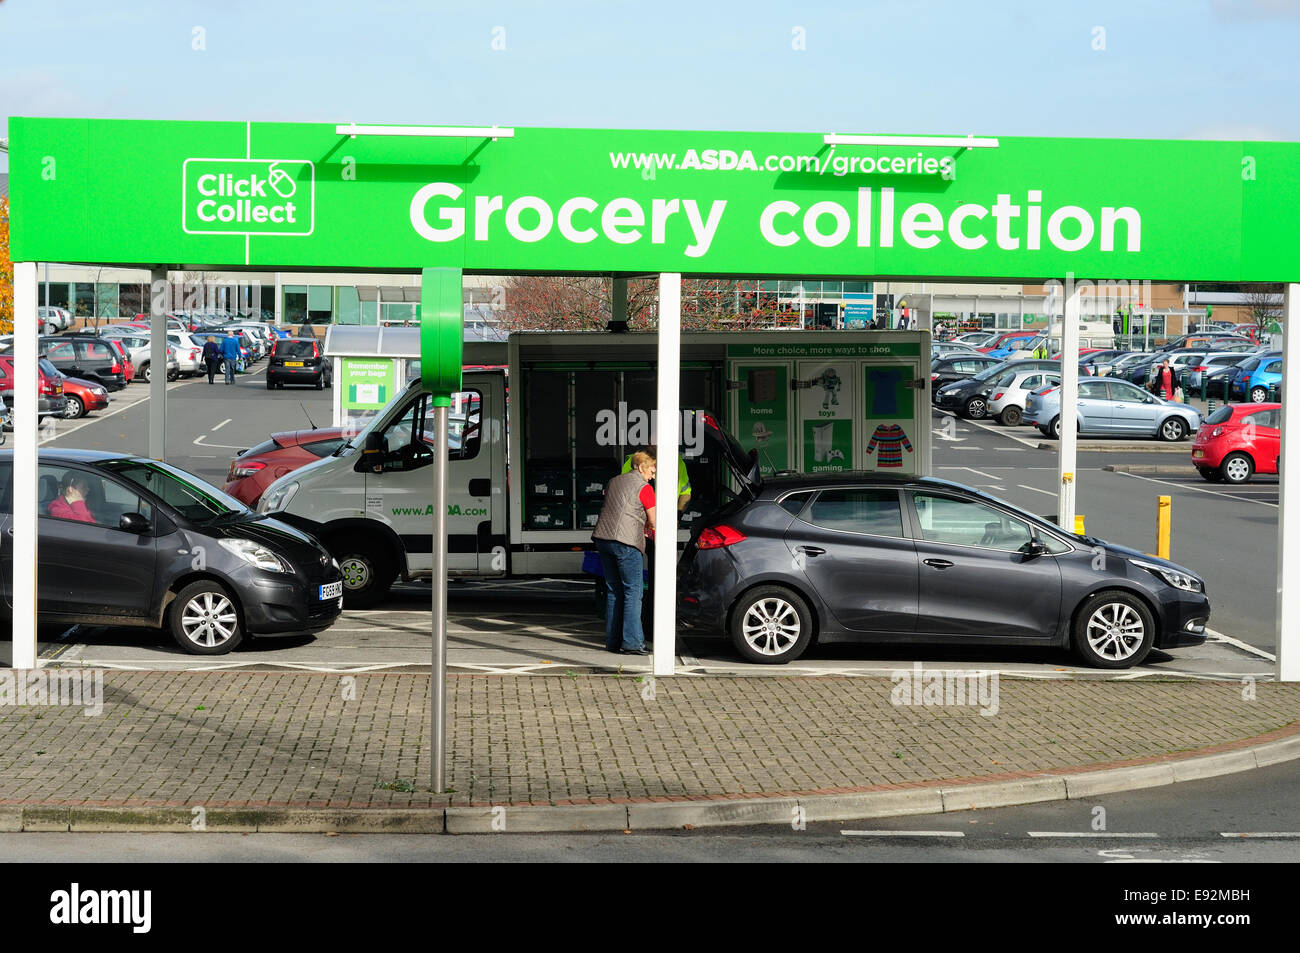 asda supermarket 39 click and collect 39 grocery point mansfield uk stock photo 74433285 alamy. Black Bedroom Furniture Sets. Home Design Ideas